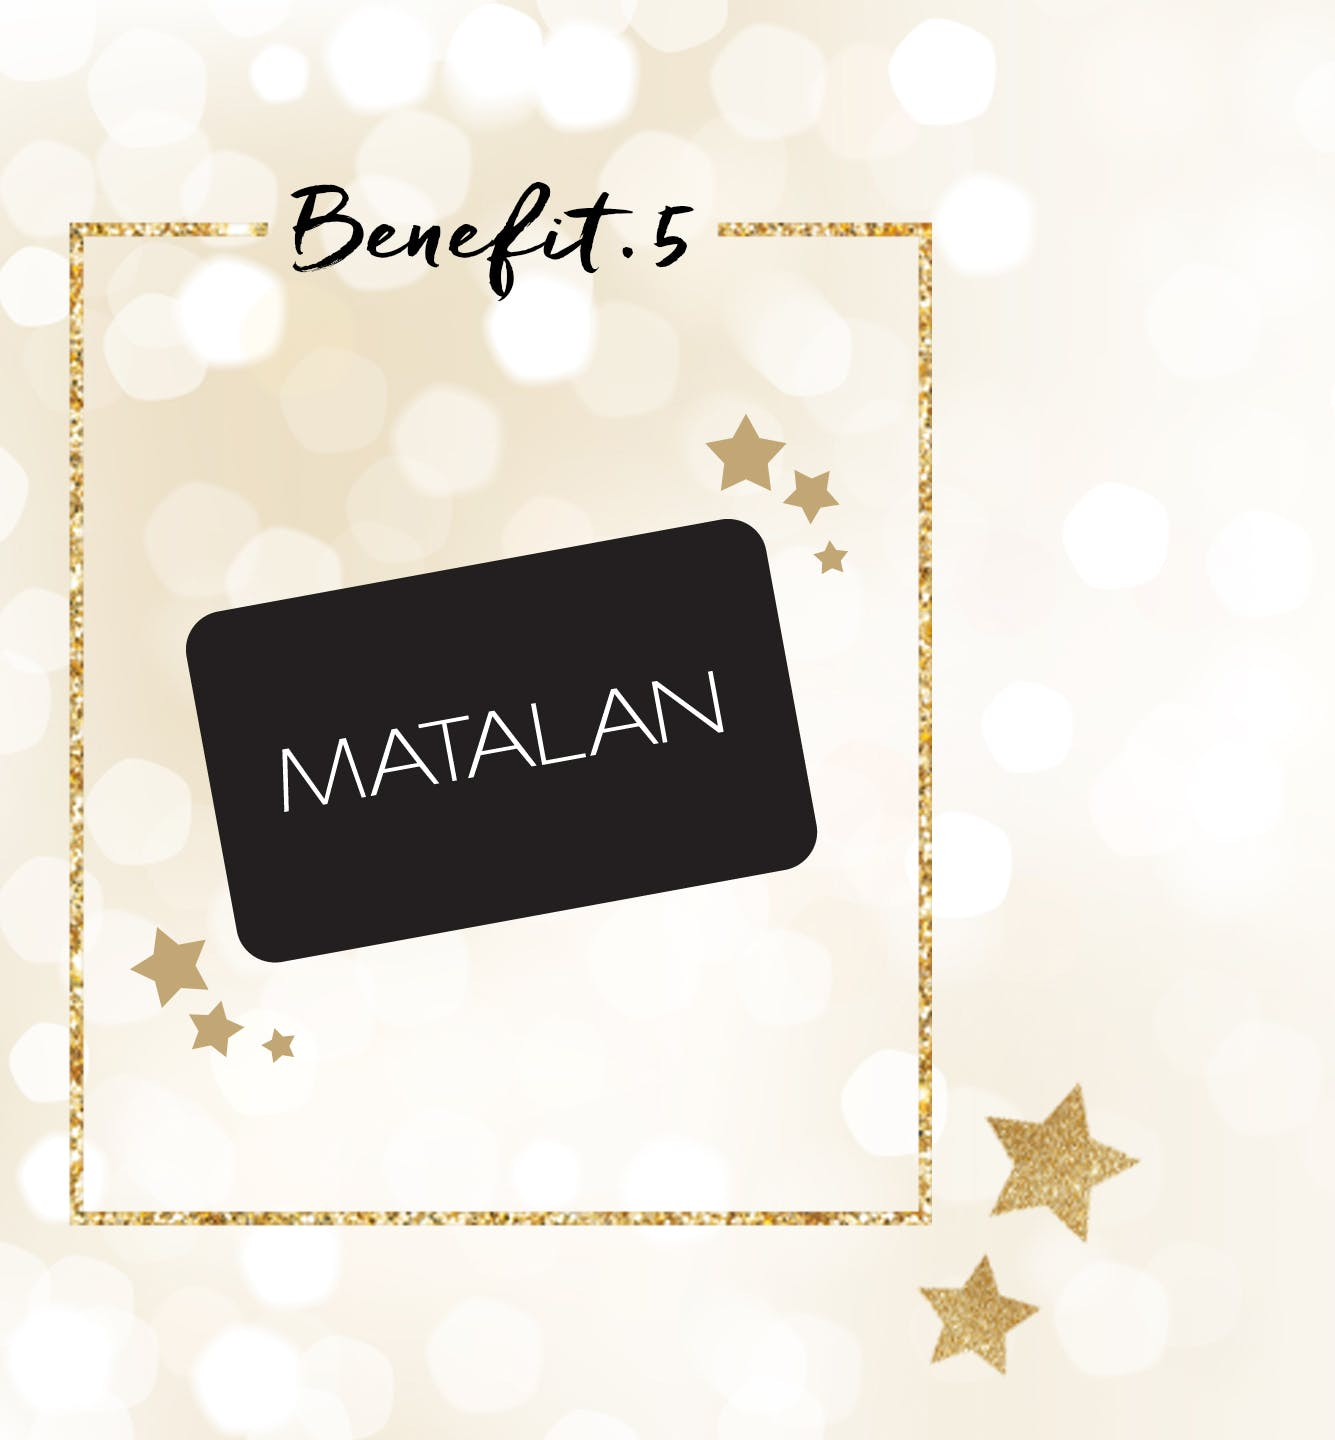 Nov 15, · Fashion and more at your fingertips with the Matalan Reward Card App. Download our FREE Reward Card App for exclusive vouchers, sale alerts, weekly style tips and more. We love to reward you! Plus, if you're a Black Card holder you can unlock even more Rewards via the app/5(K).